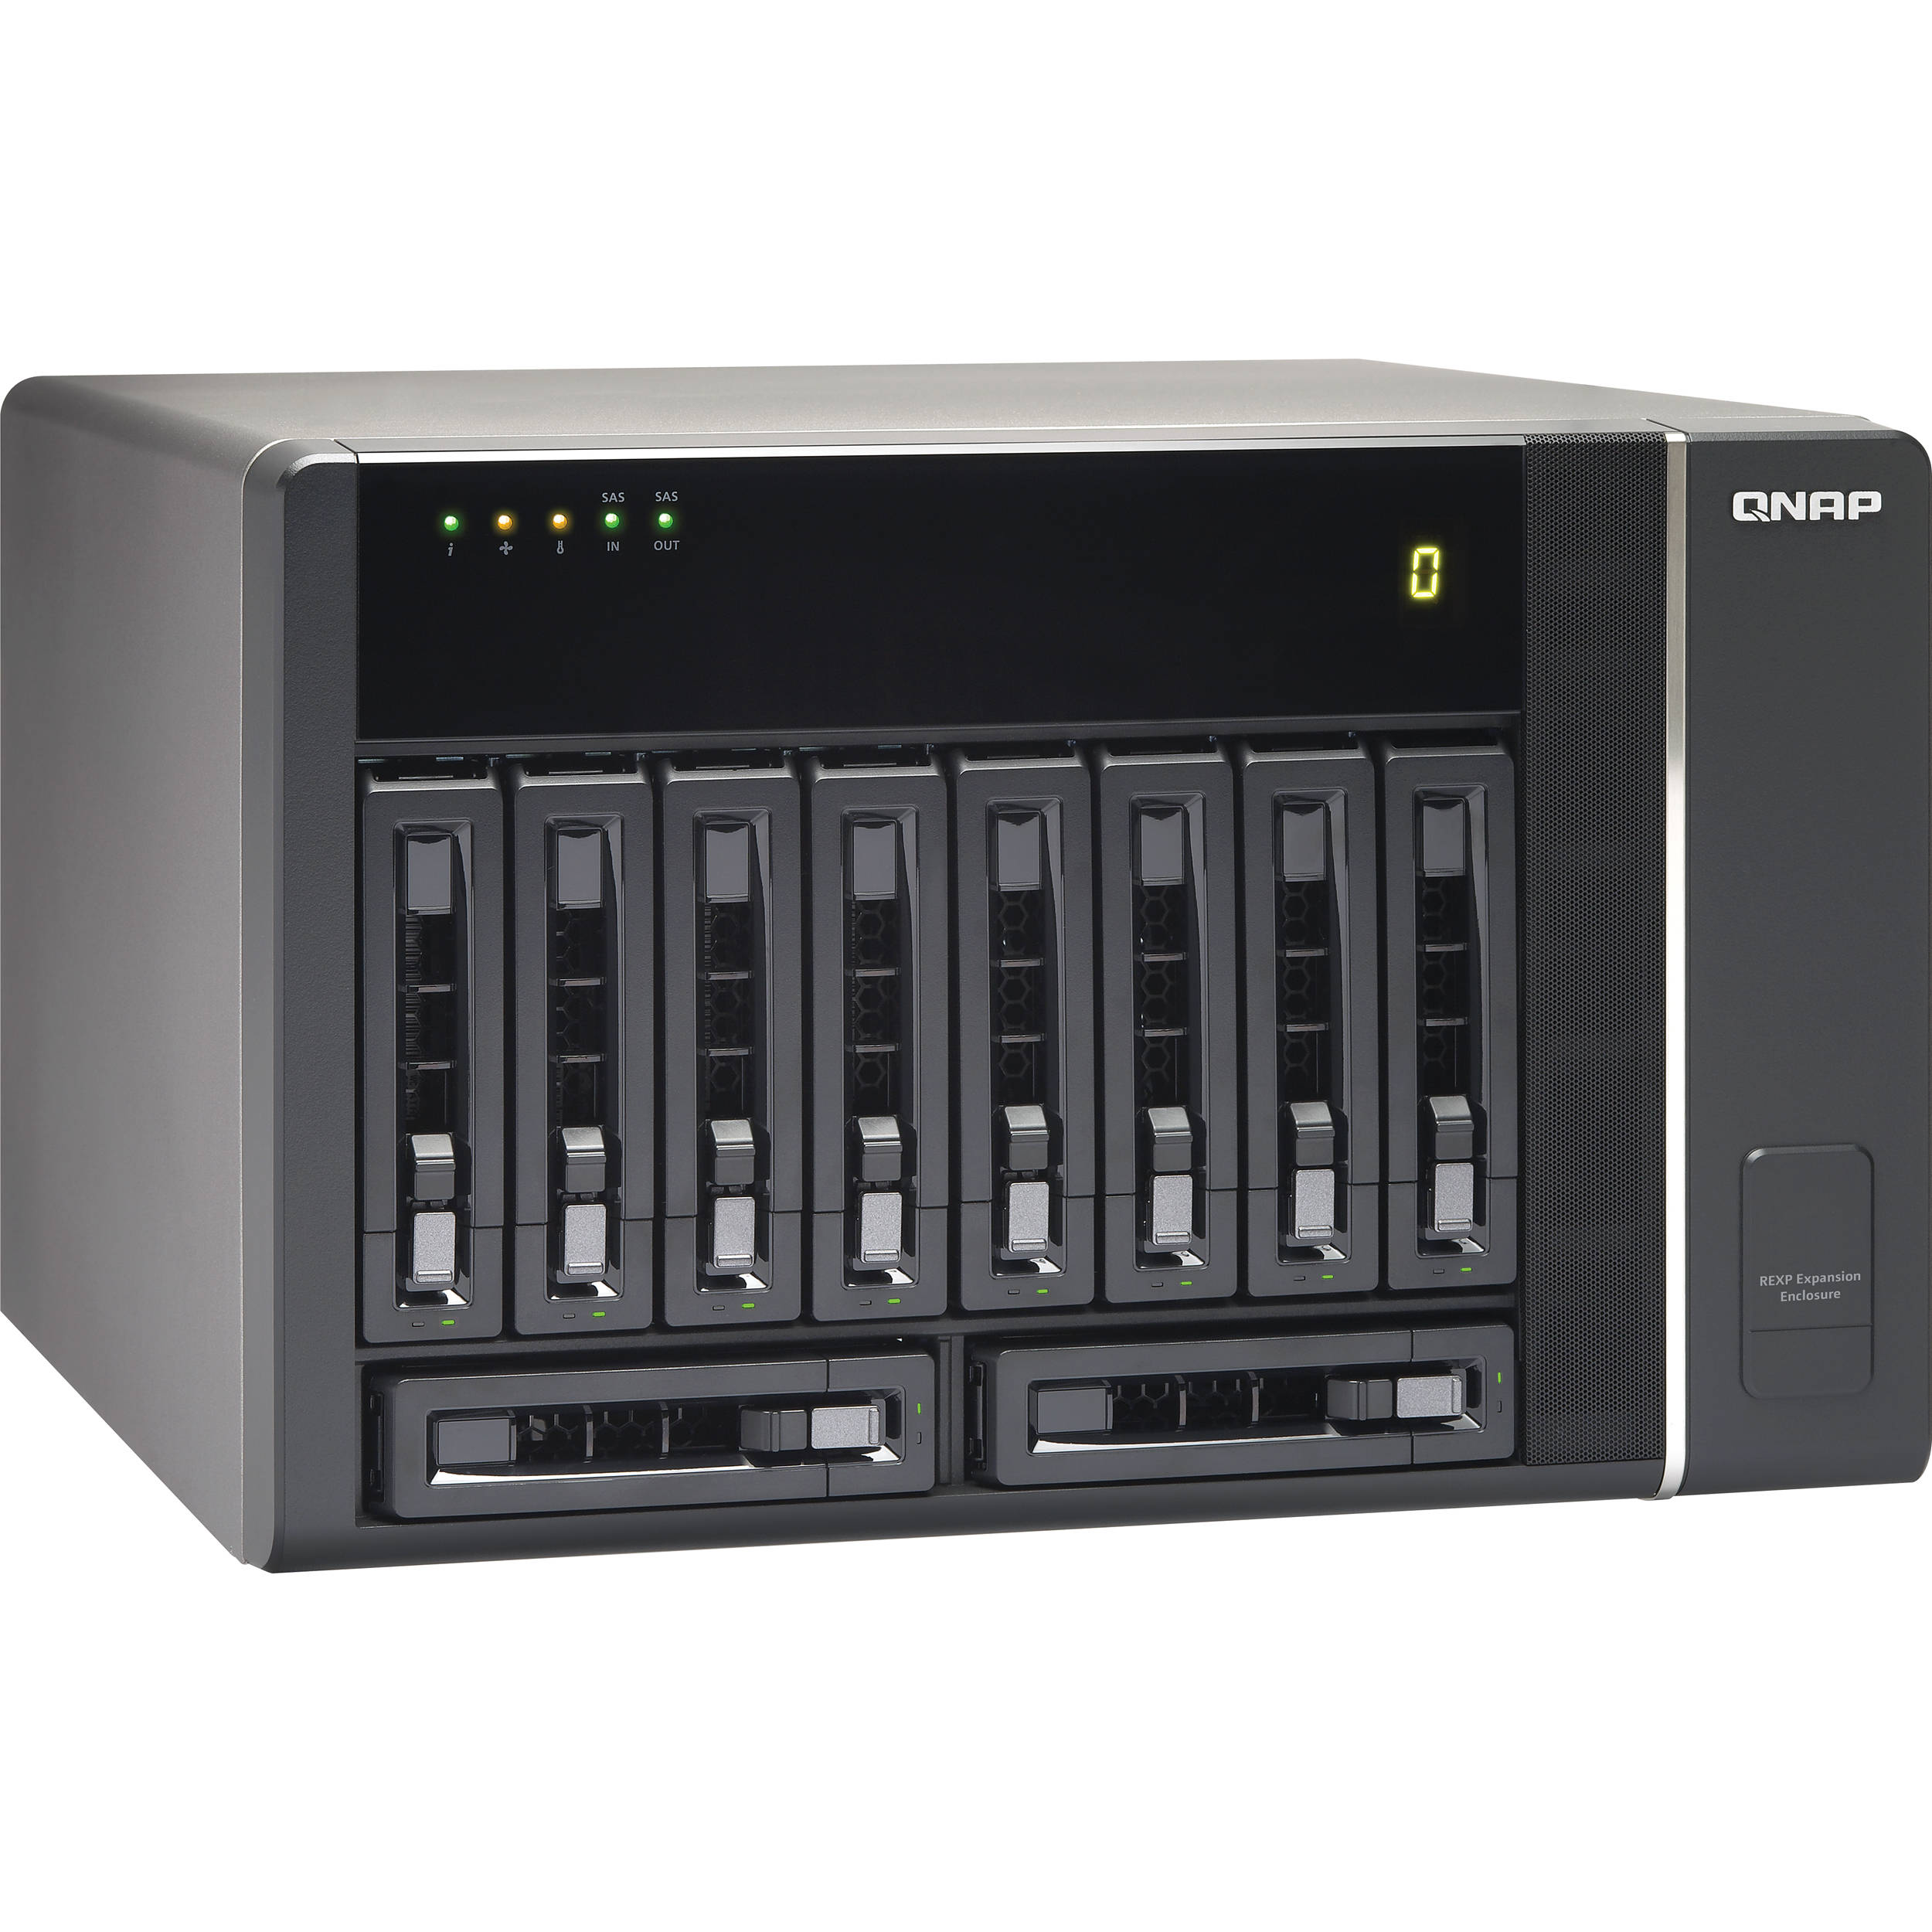 QNAP TS-879 TURBO NAS QTS DRIVERS FOR MAC